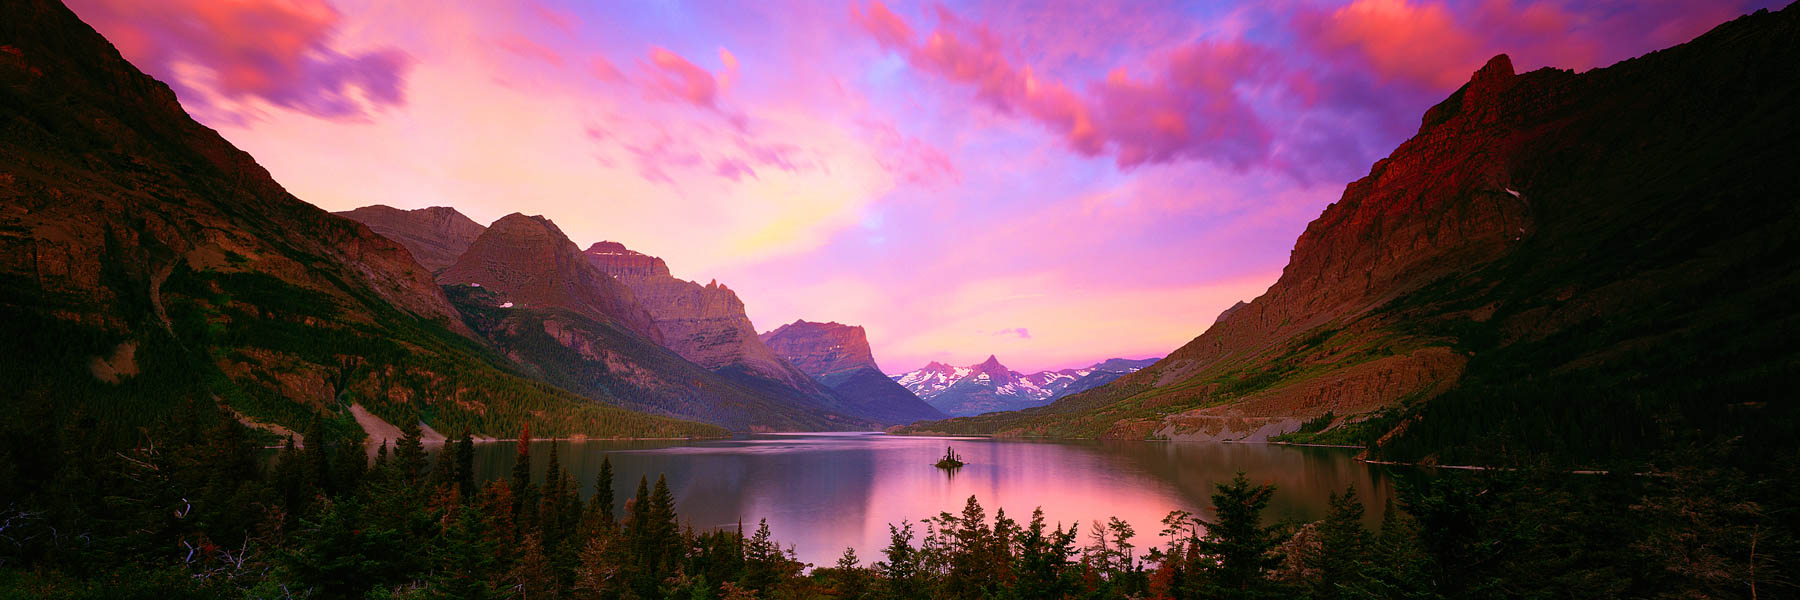 Sunrise casting glowing pink light across St Mary Lake, Glacier National Park, Montana, USA.